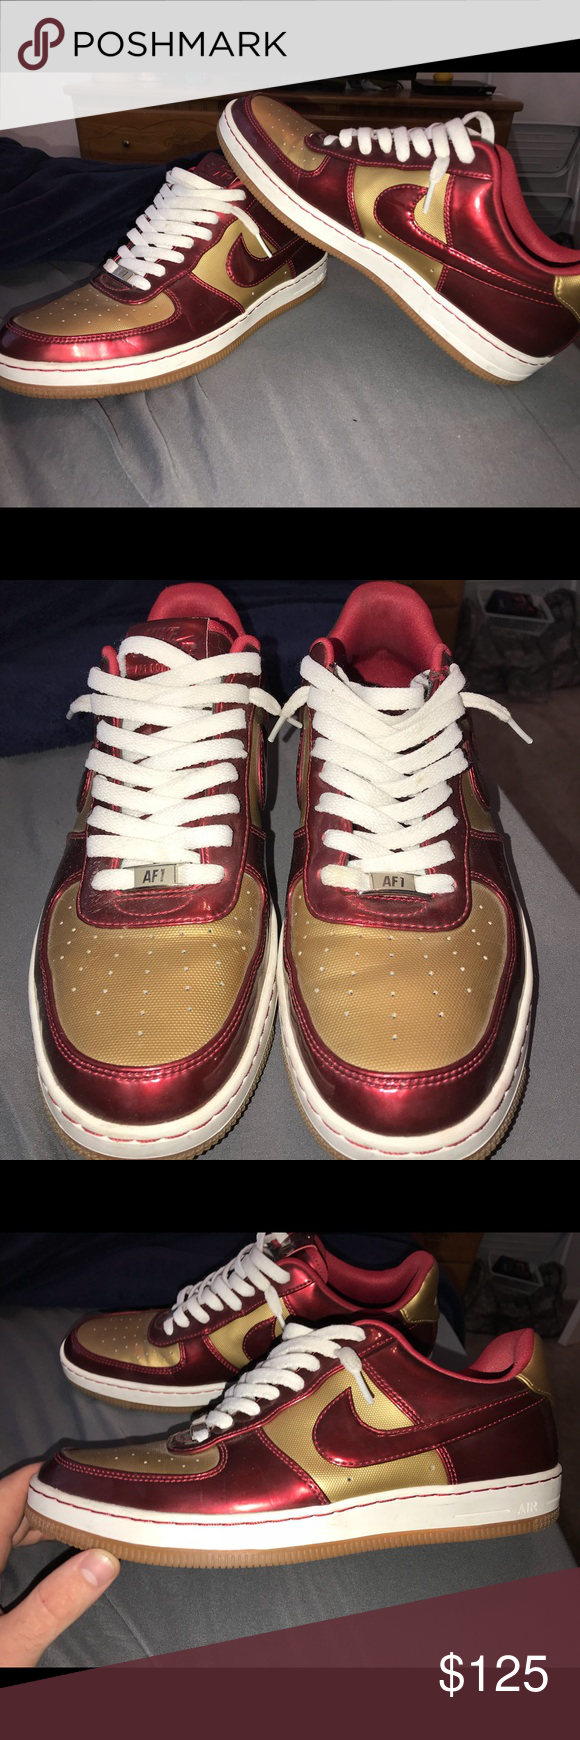 0f0e60a8f0 Nike Air Force 1 lows iron man edition Brand new, worn twice, don't wear  them have had them for 3 years. Size 10.5 Nike Shoes Sneakers